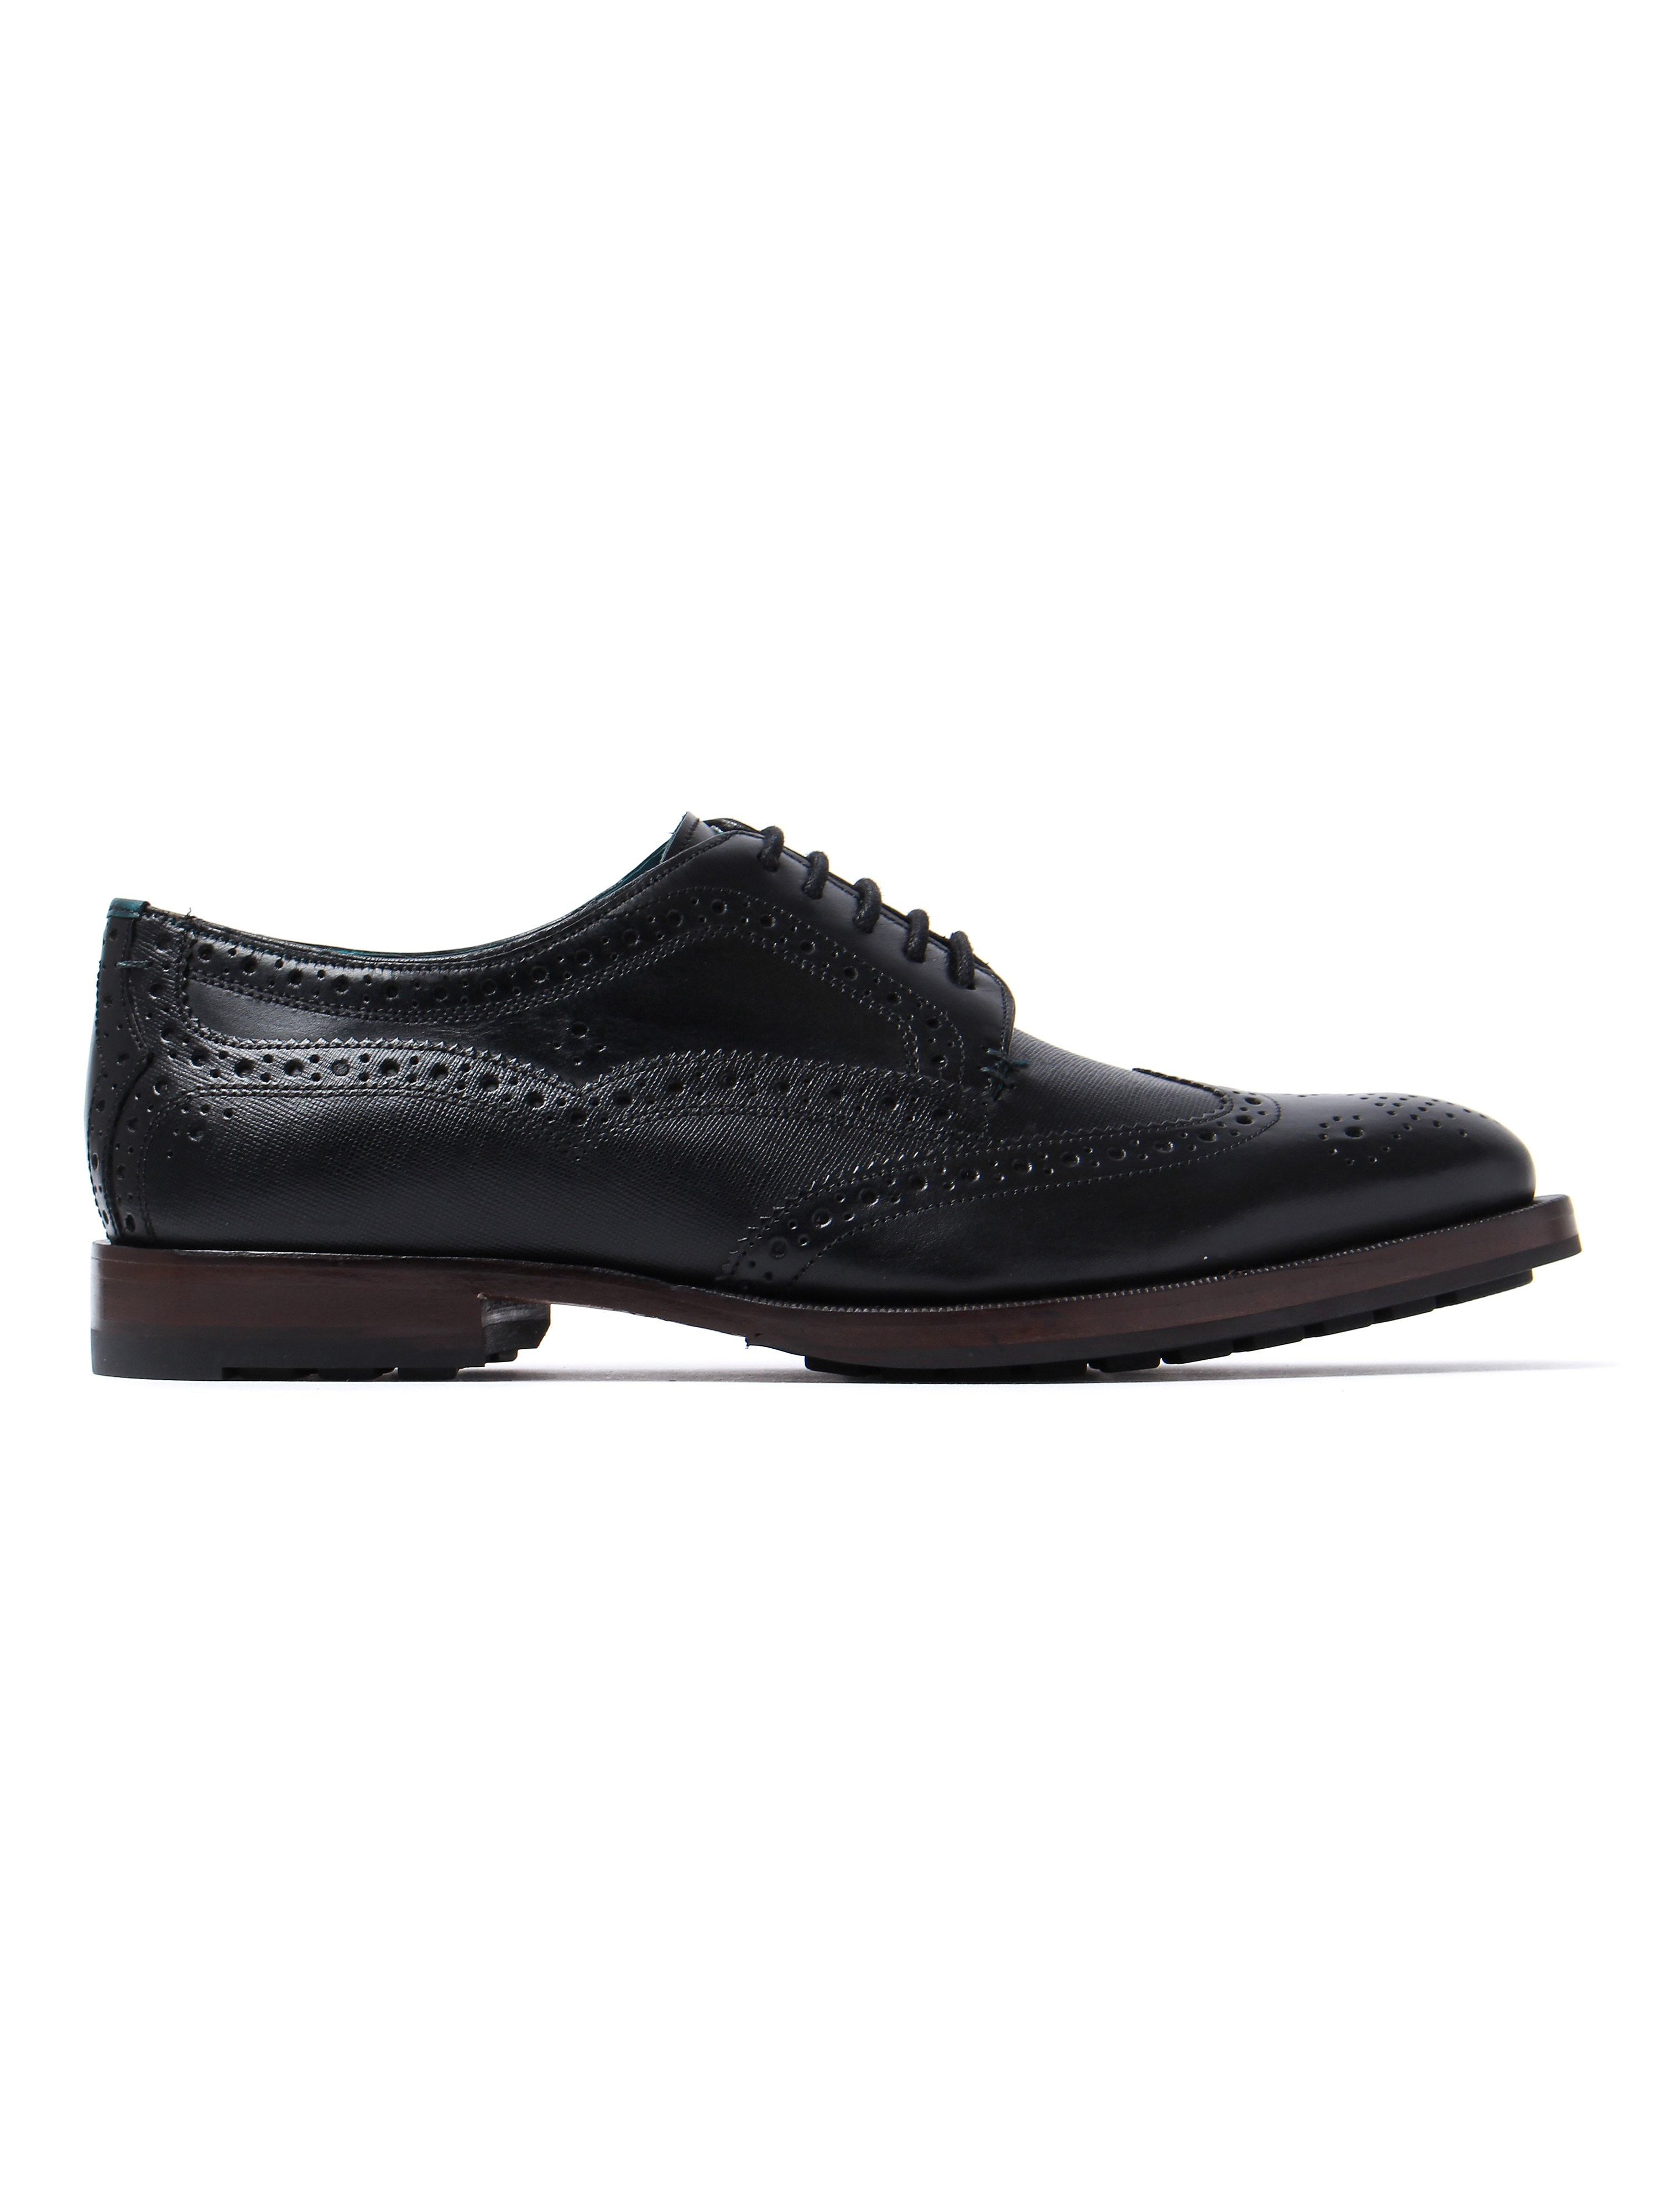 Ted Baker Men's Senape Oxford Brogues - Black Leather